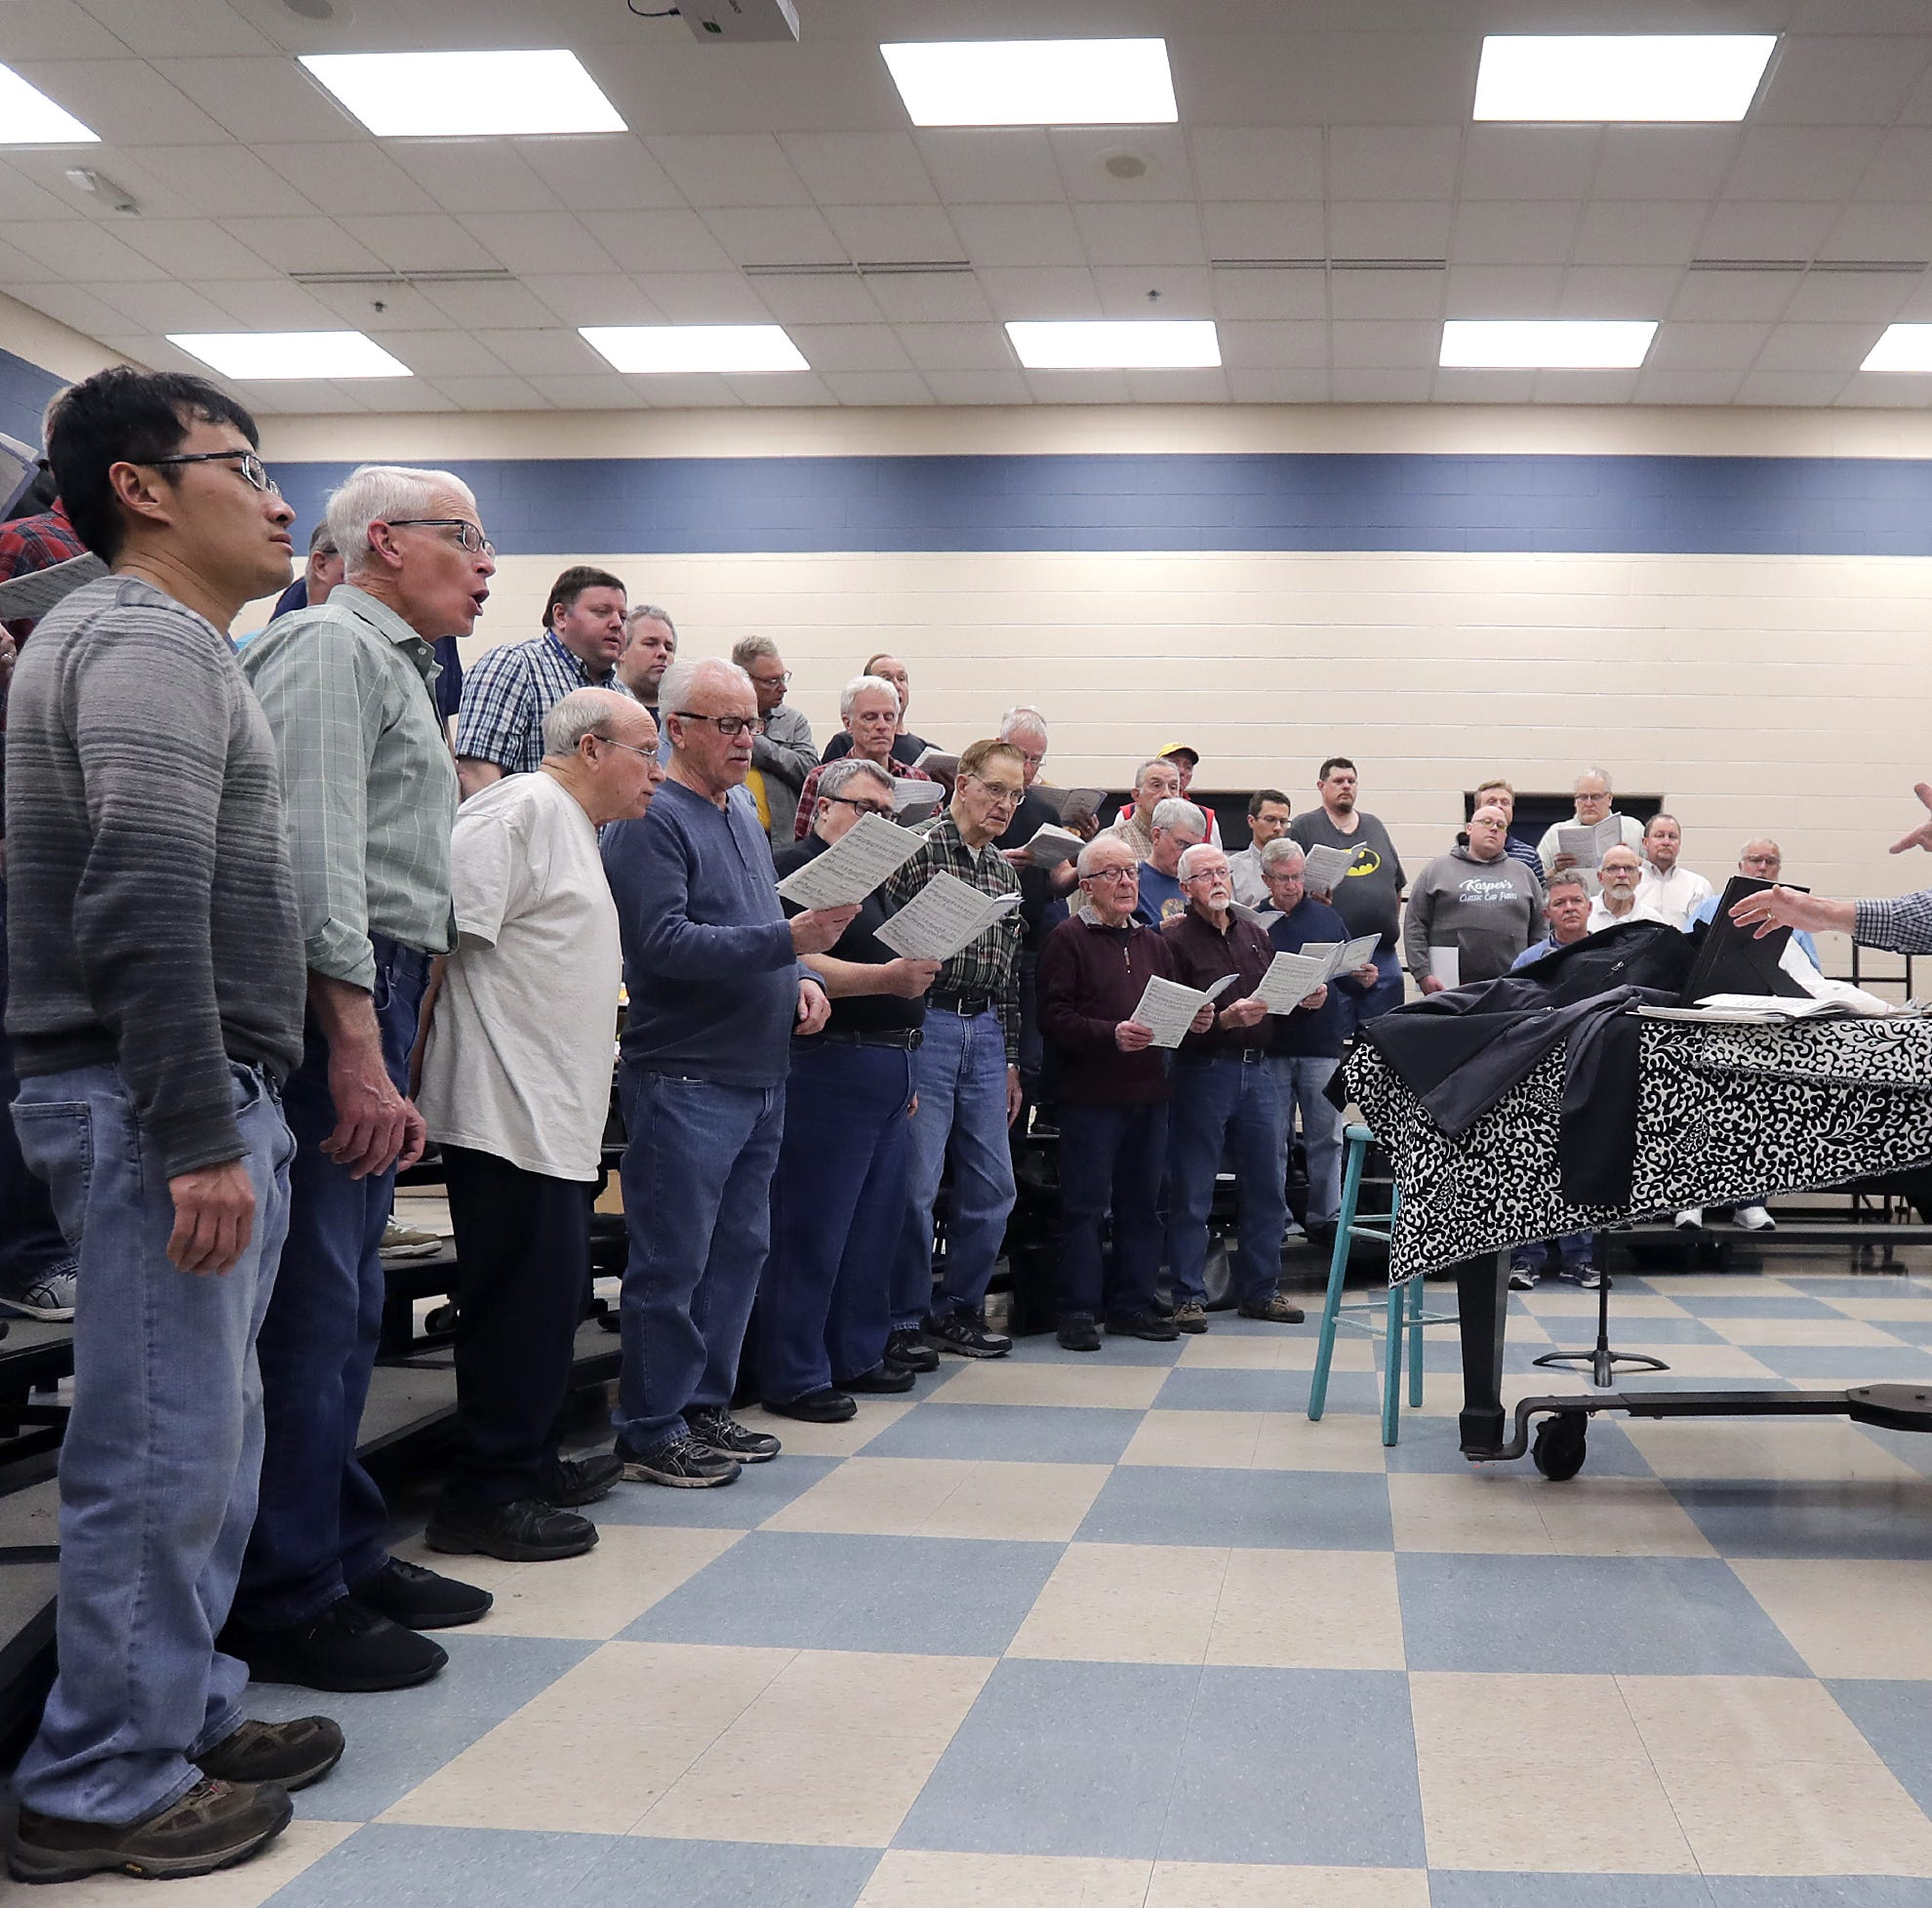 'A jewel in the Fox Valley': MacDowell Male Chorus celebrates 85 years of brotherhood